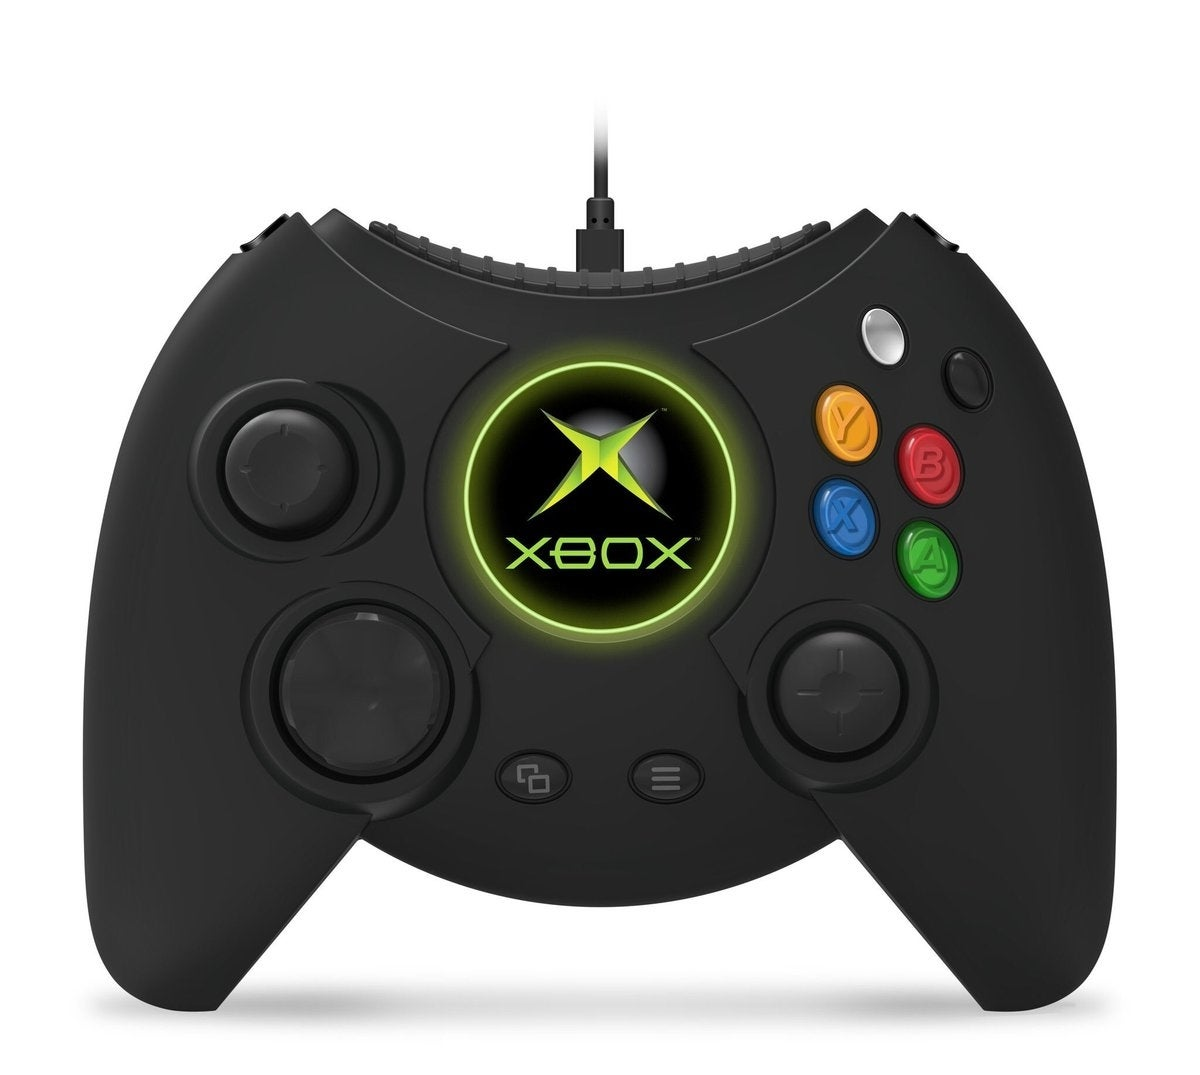 Original Xbox 'Duke' Controller to Return in March